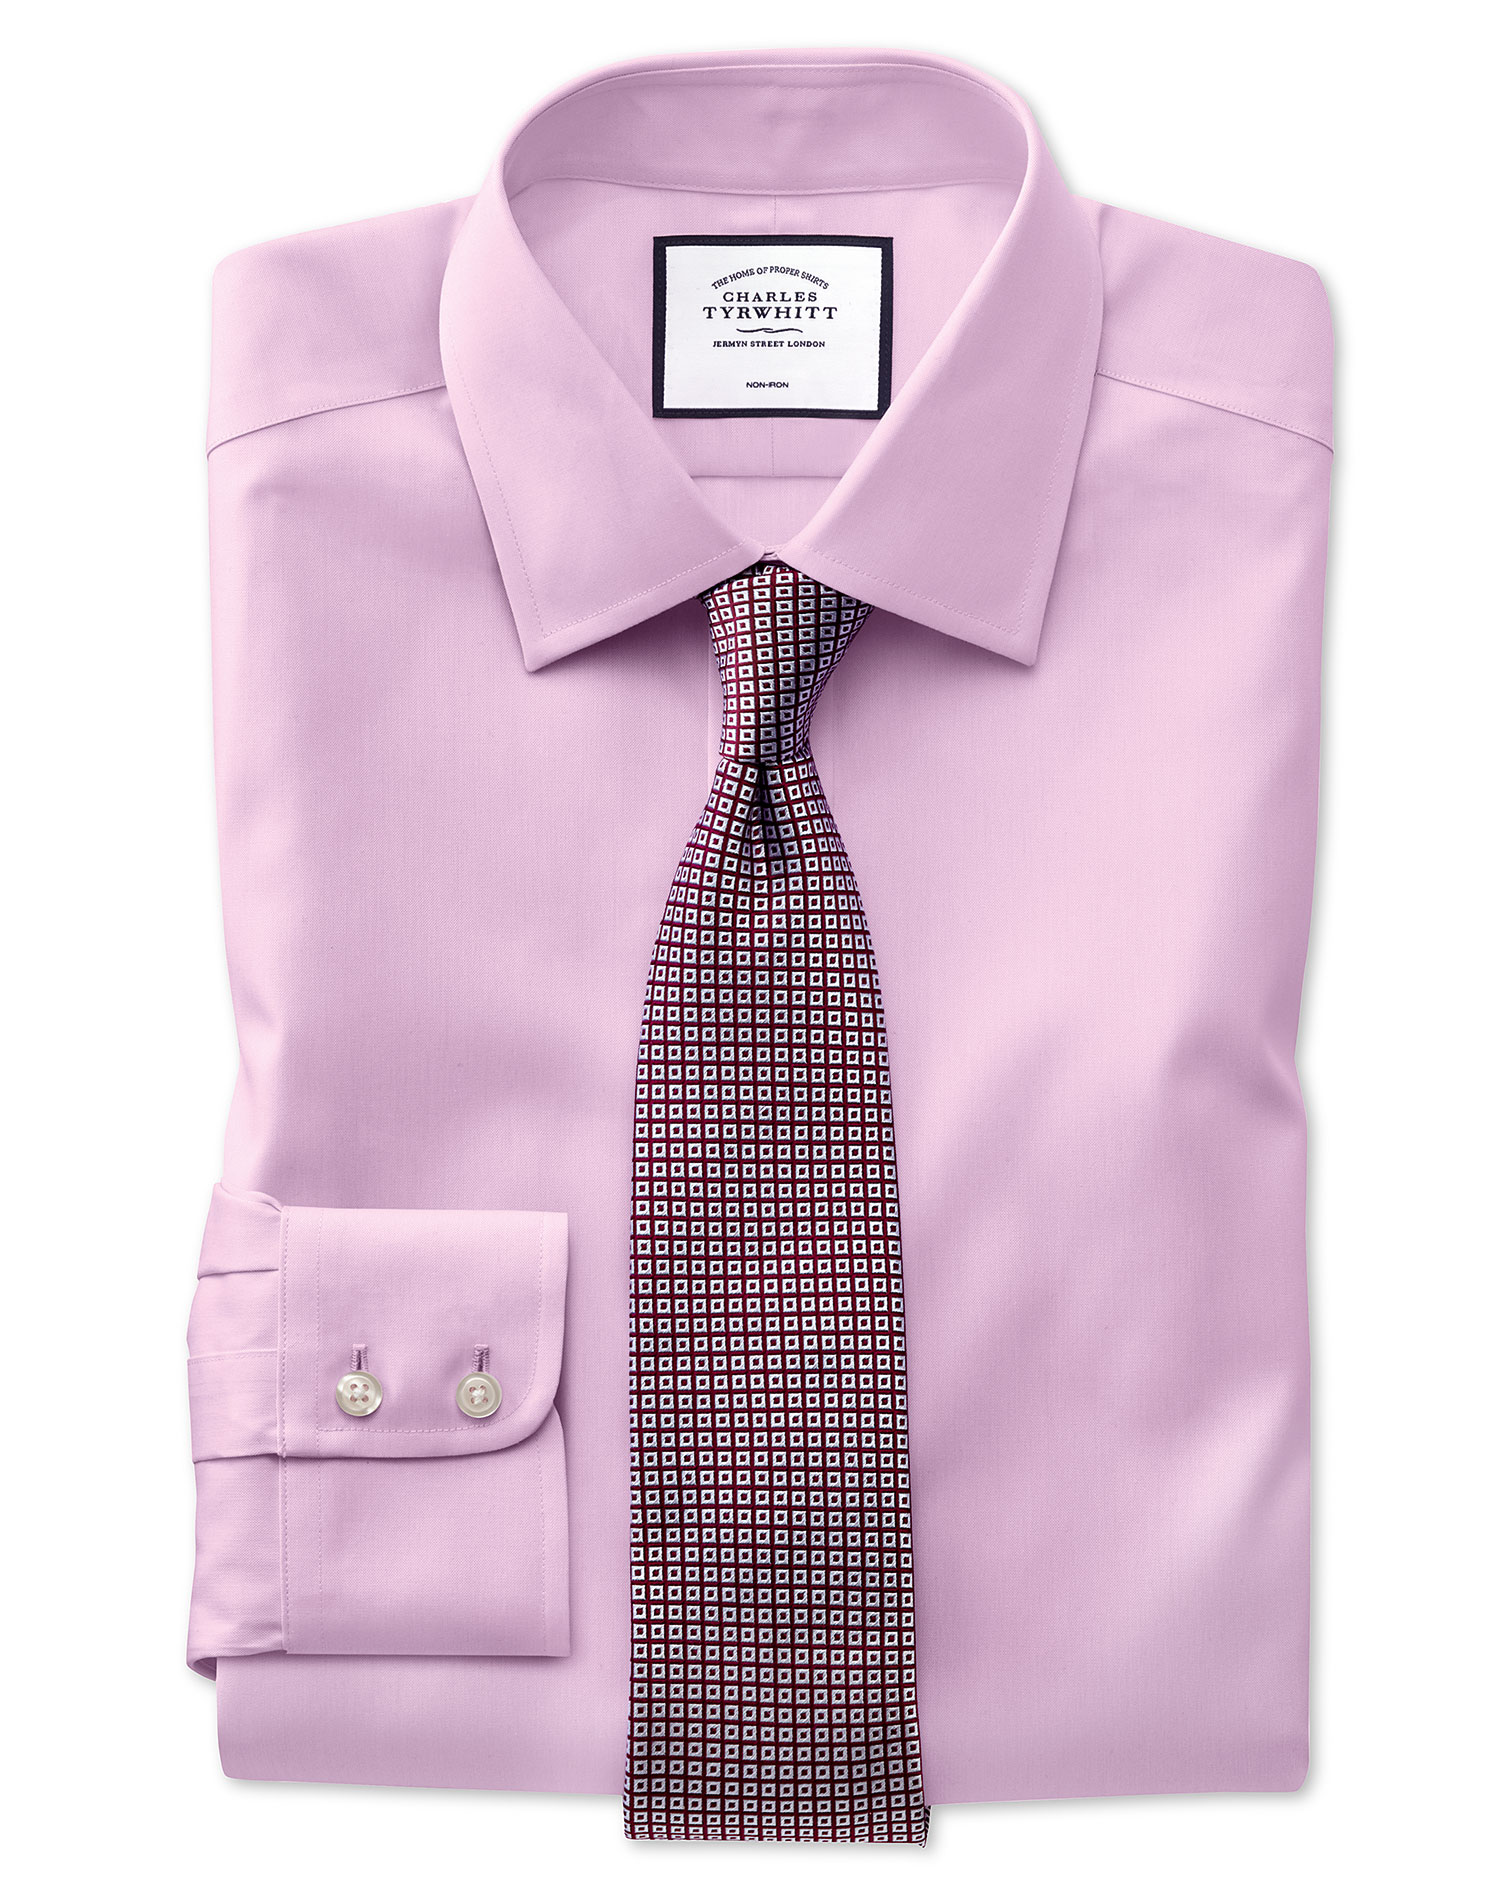 Slim Fit Non-Iron Pinpoint Oxford Pink Cotton Formal Shirt Single Cuff Size 17/36 by Charles Tyrwhit